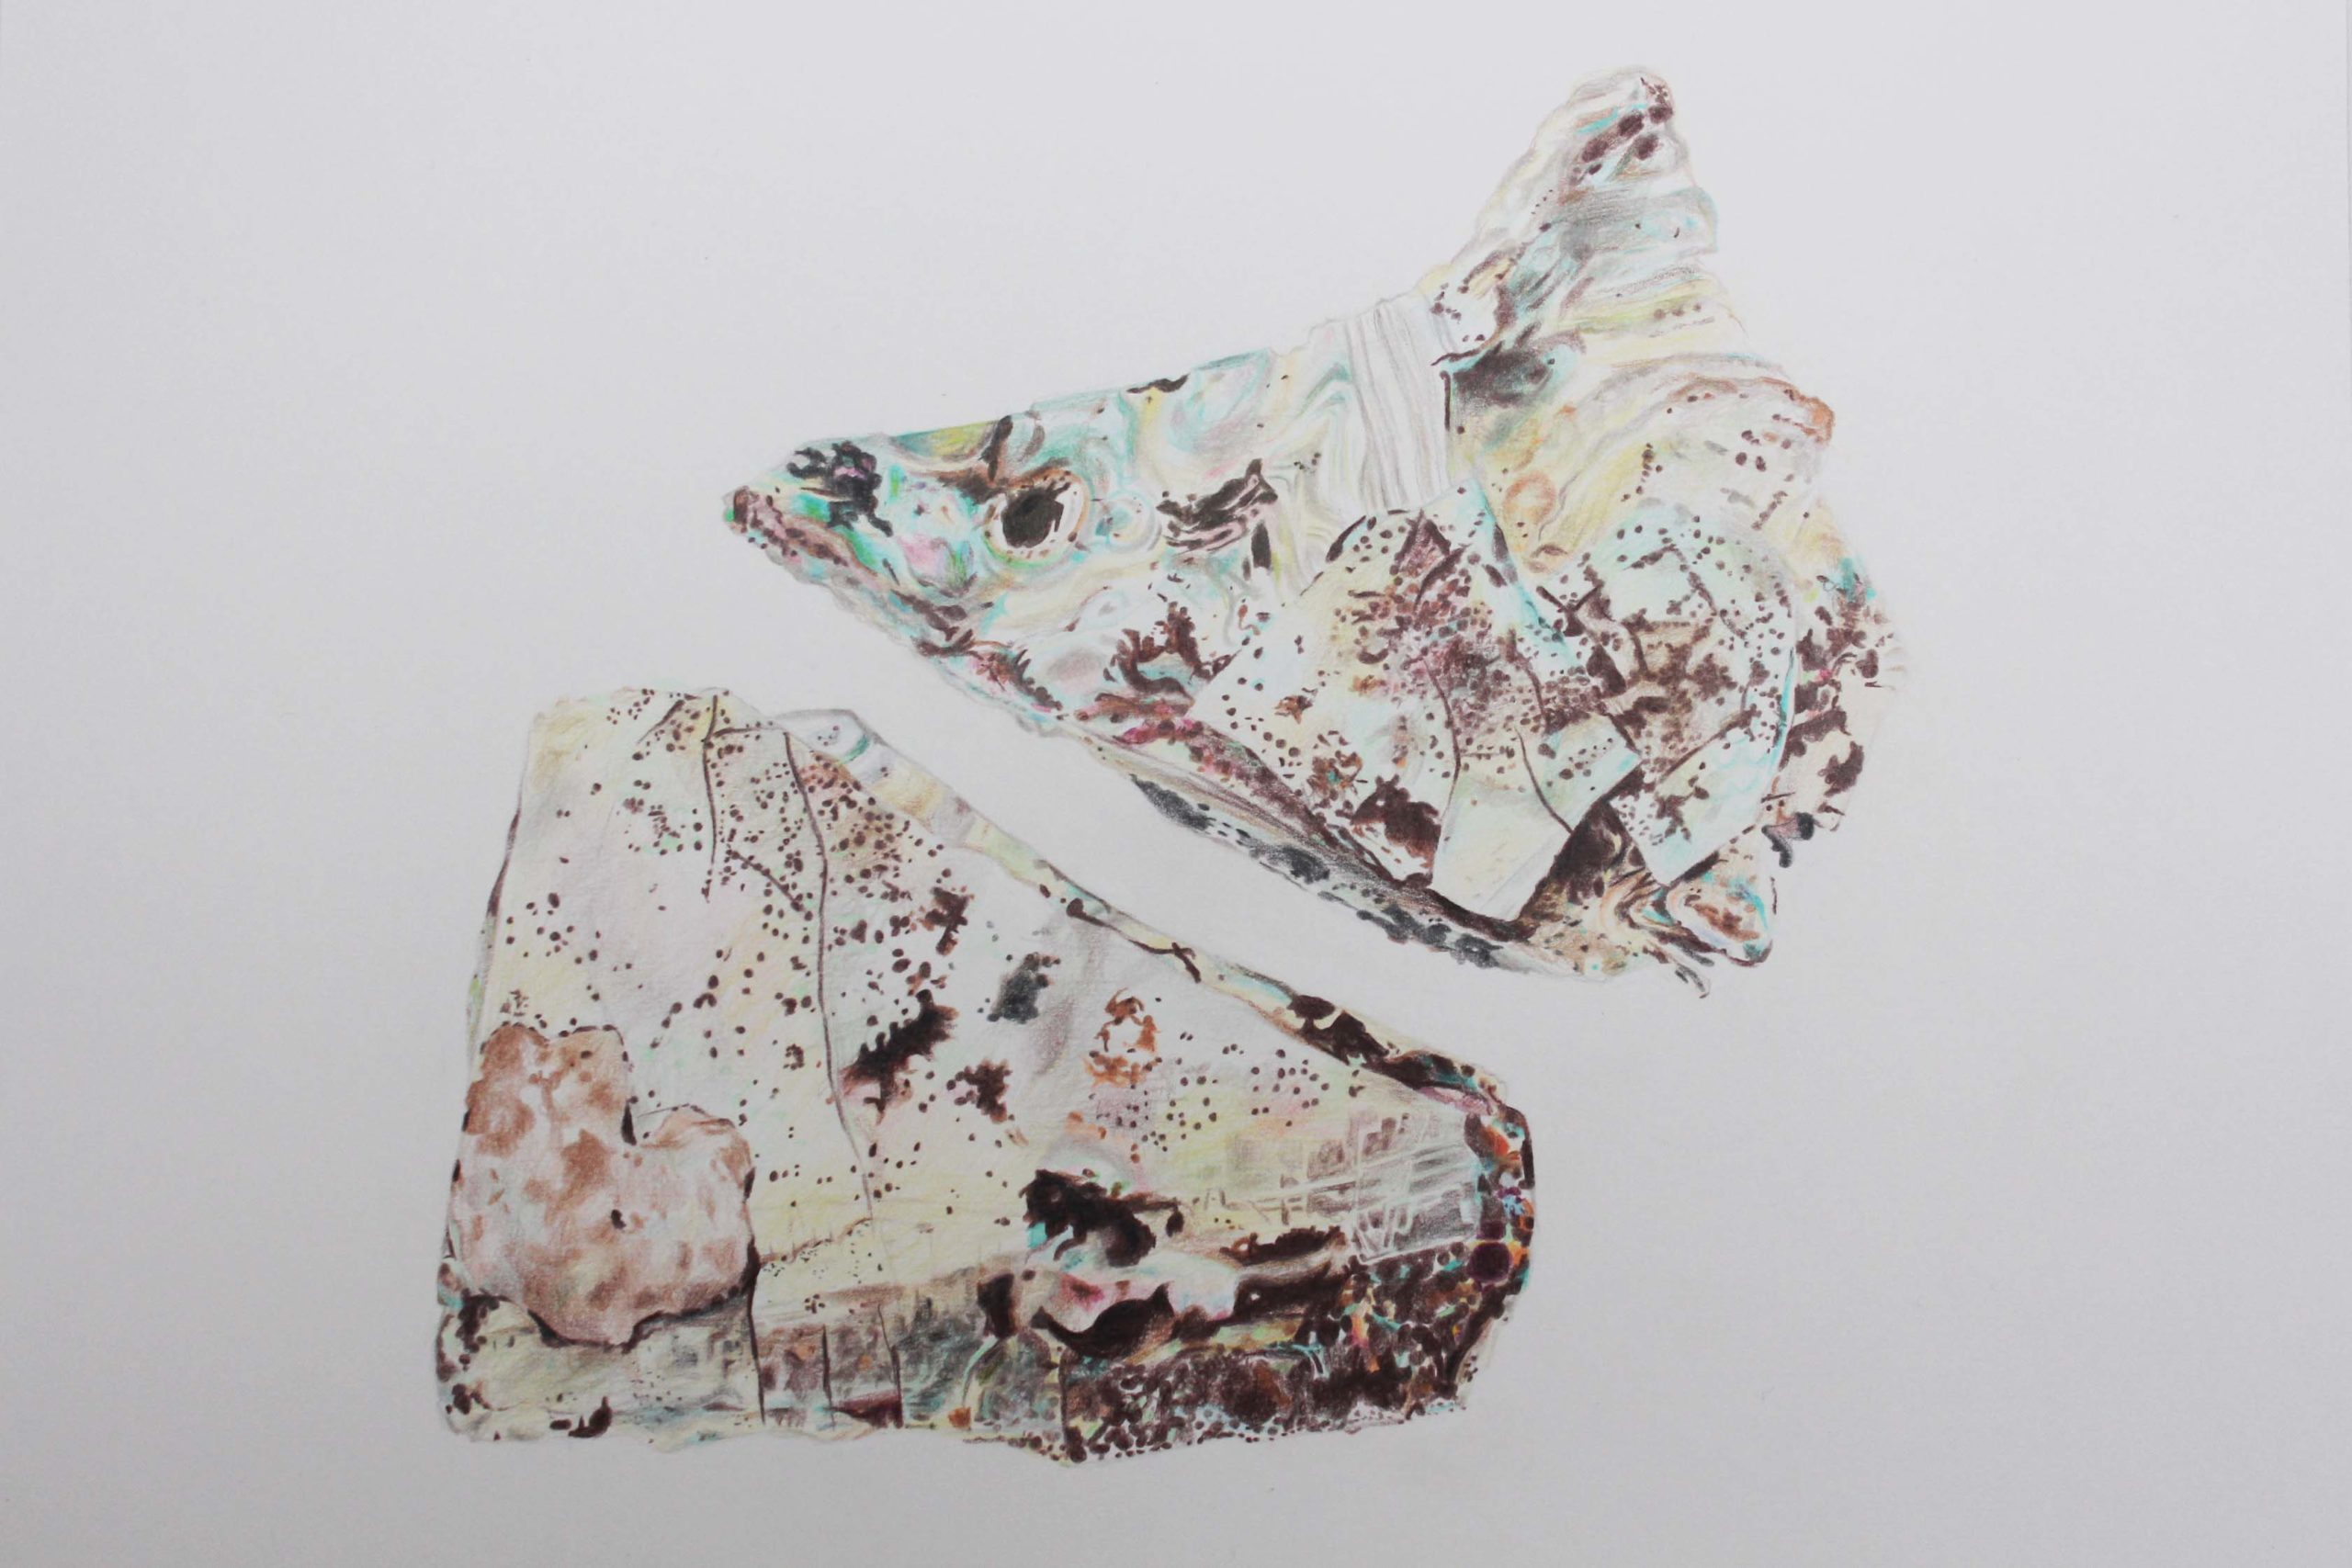 Two Fragments coloured pencil drawing by Abi Spendlove